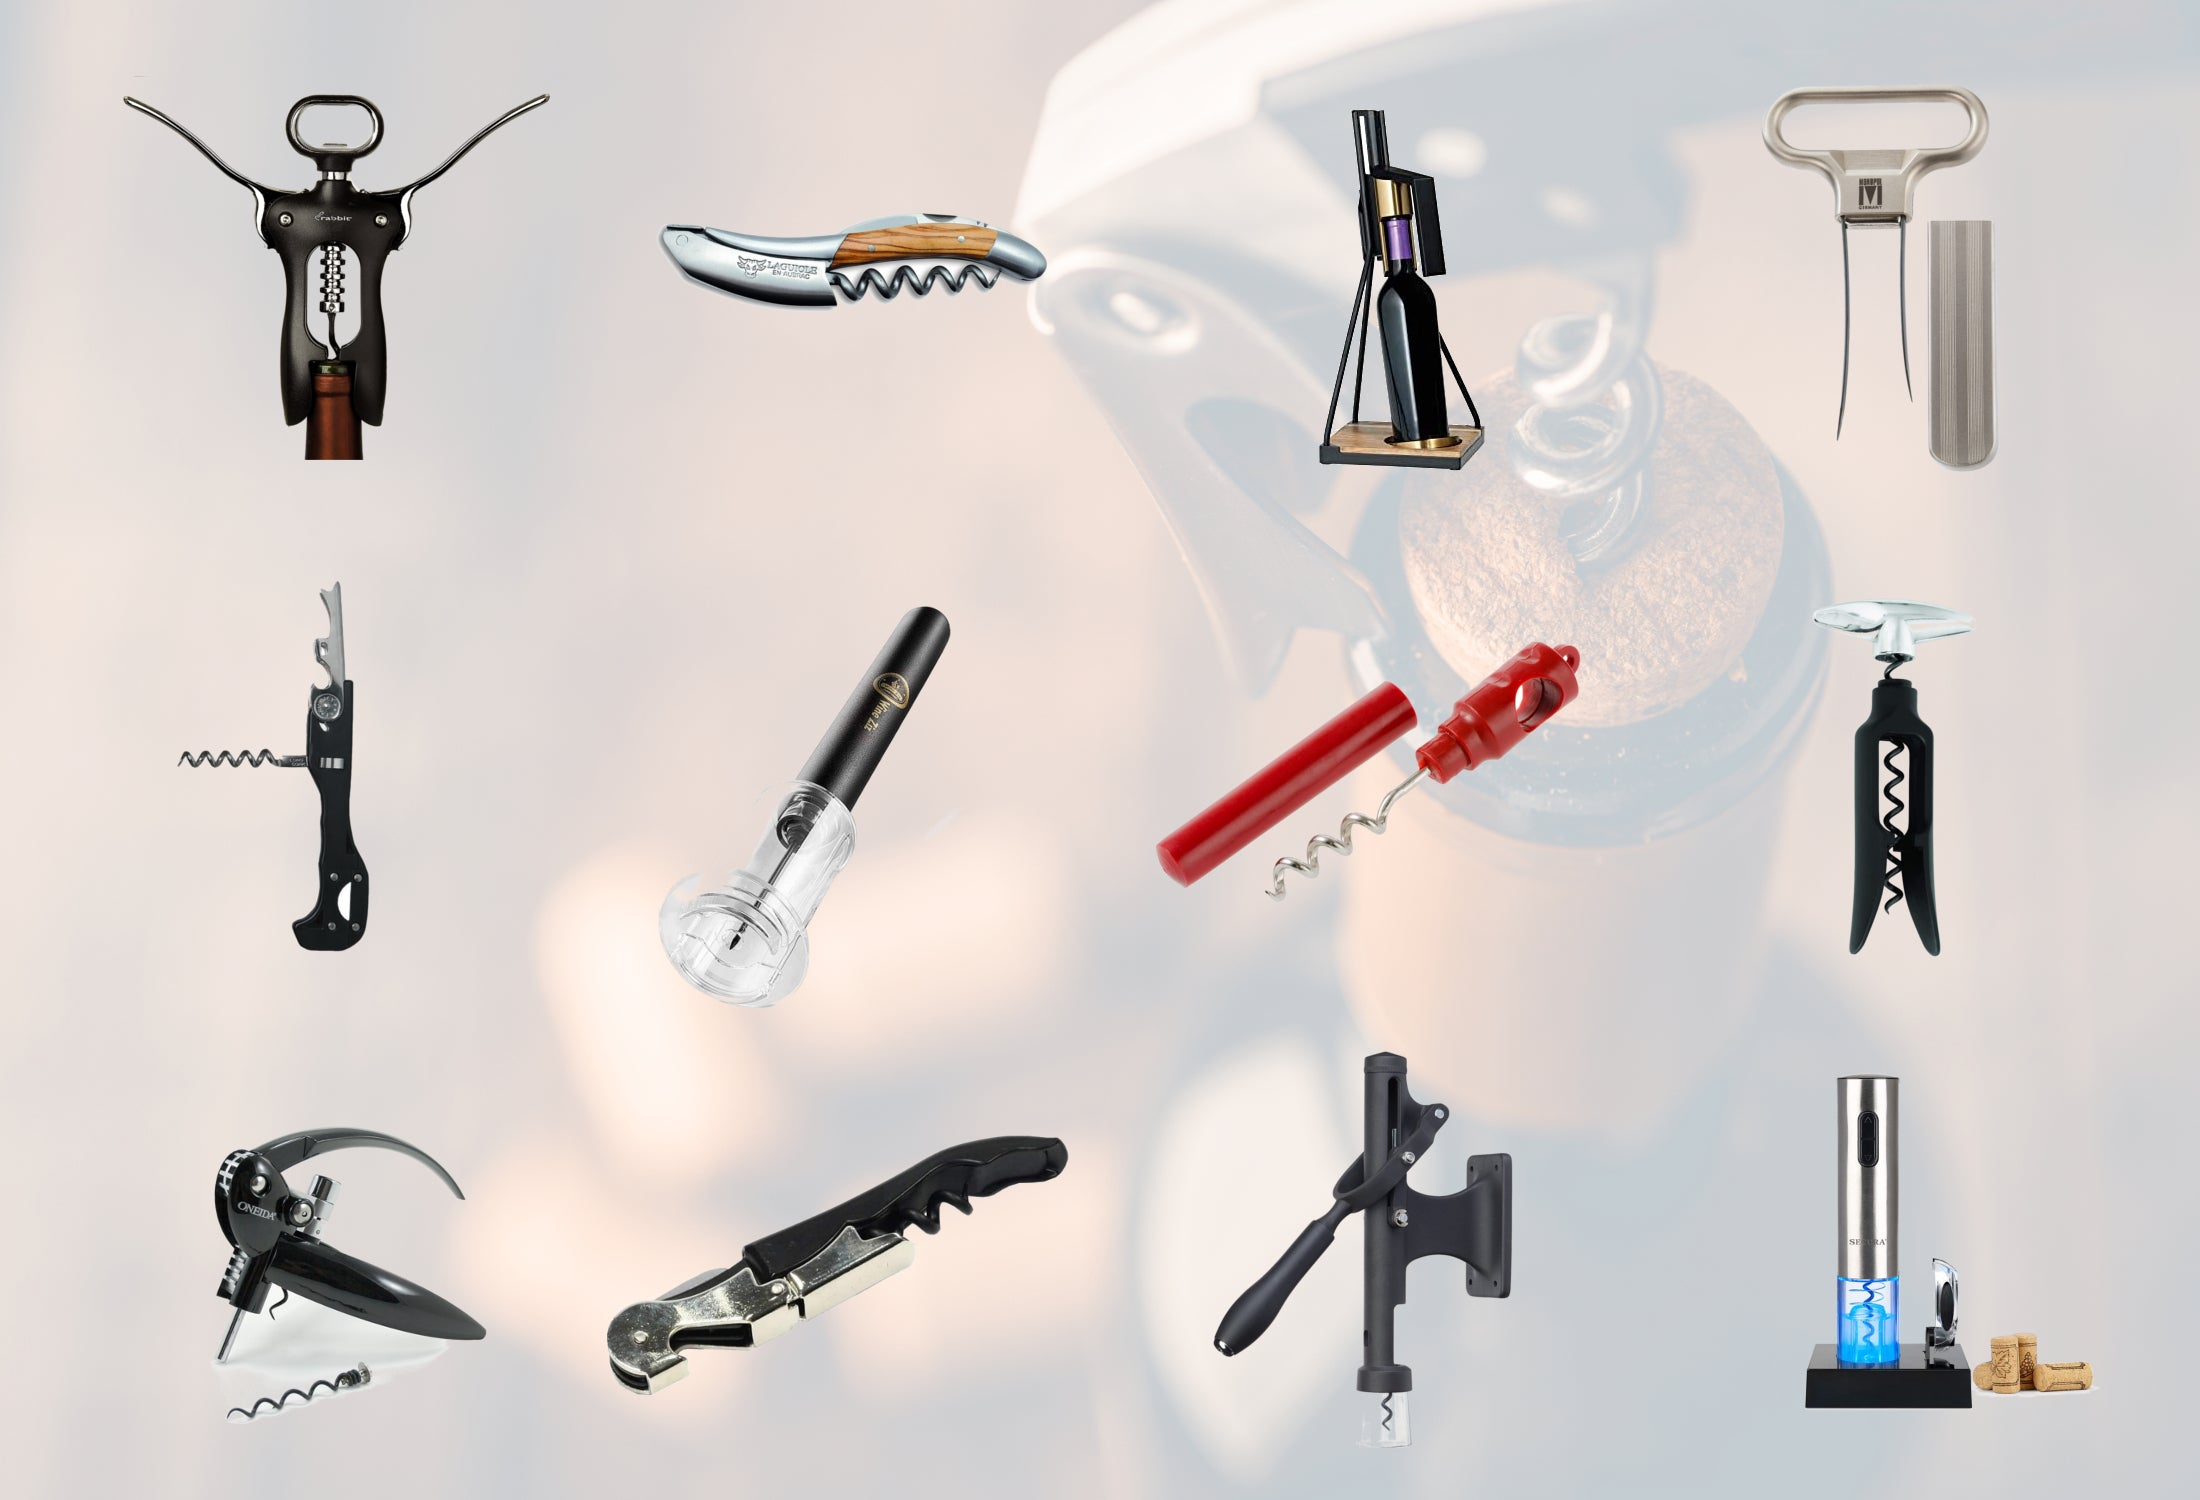 12 different types of corkscrews